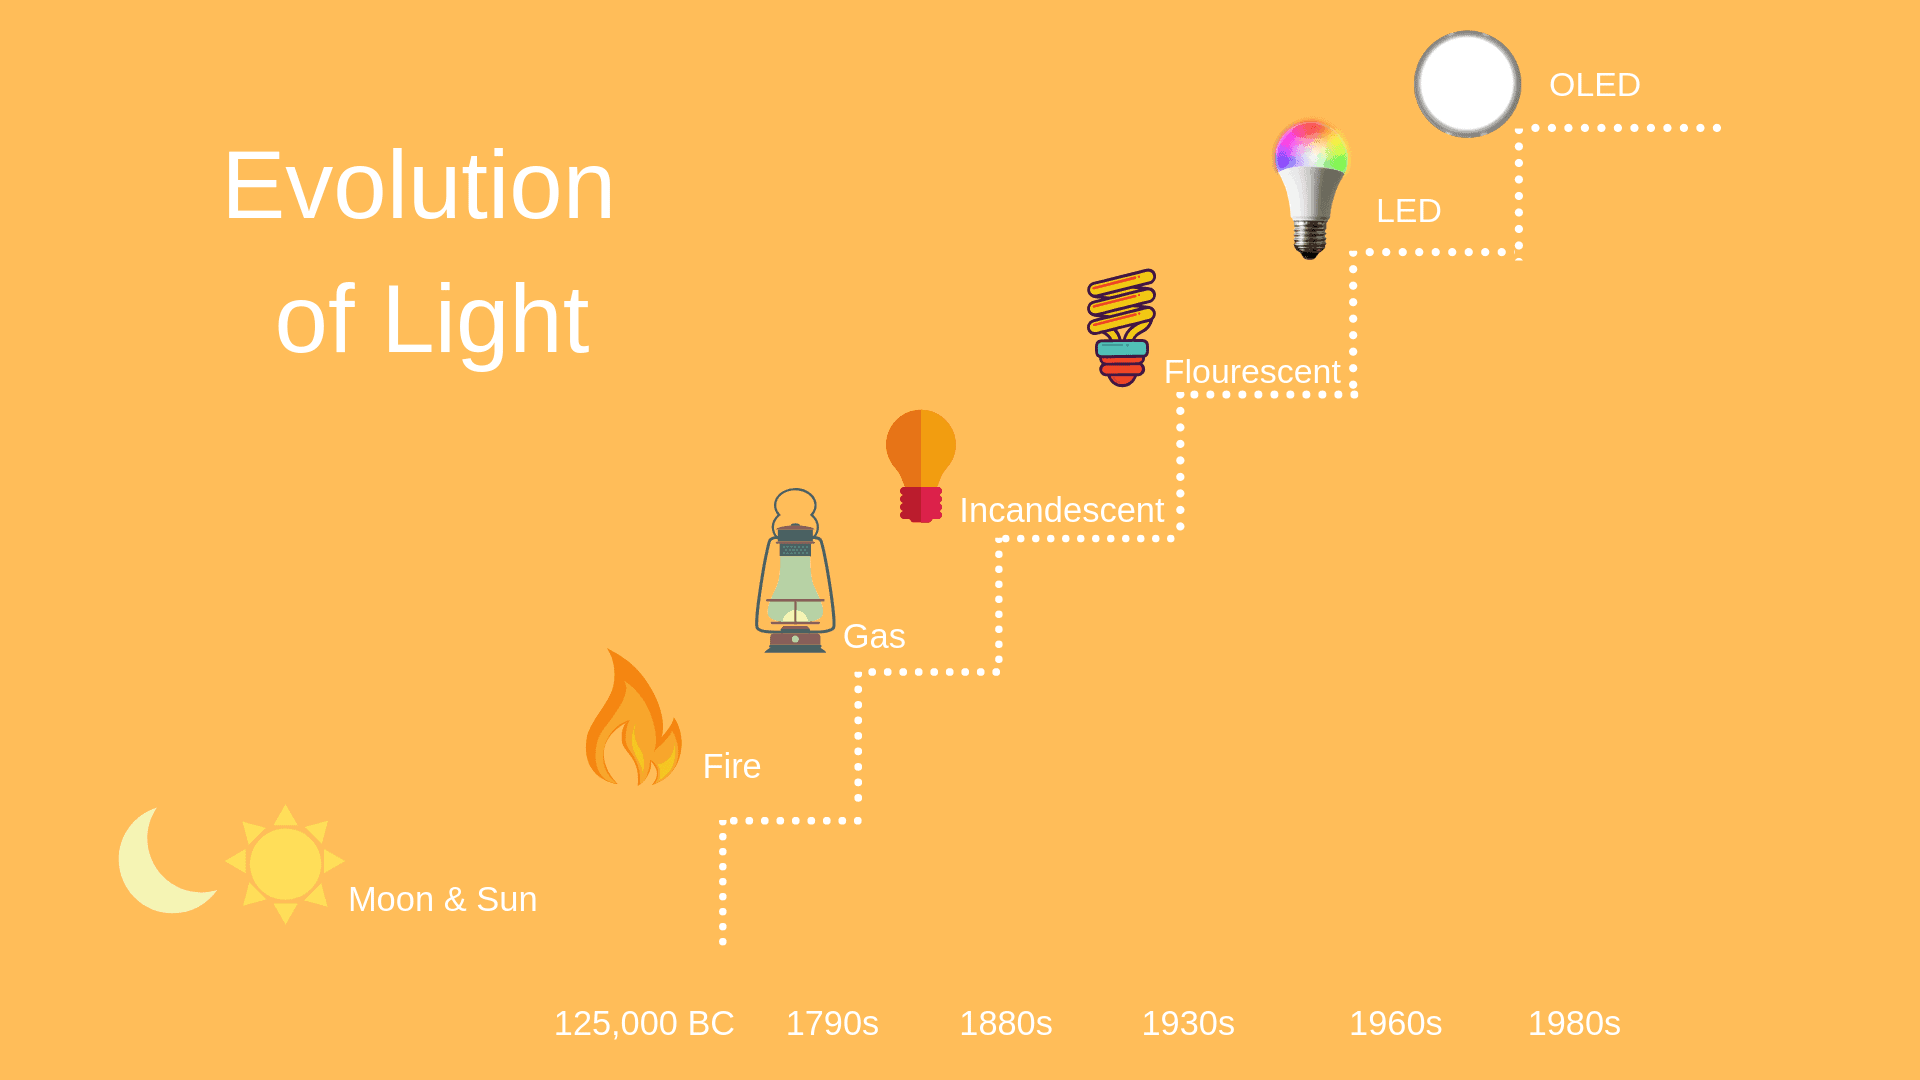 Graphic of the evolution of light from fire to OLED